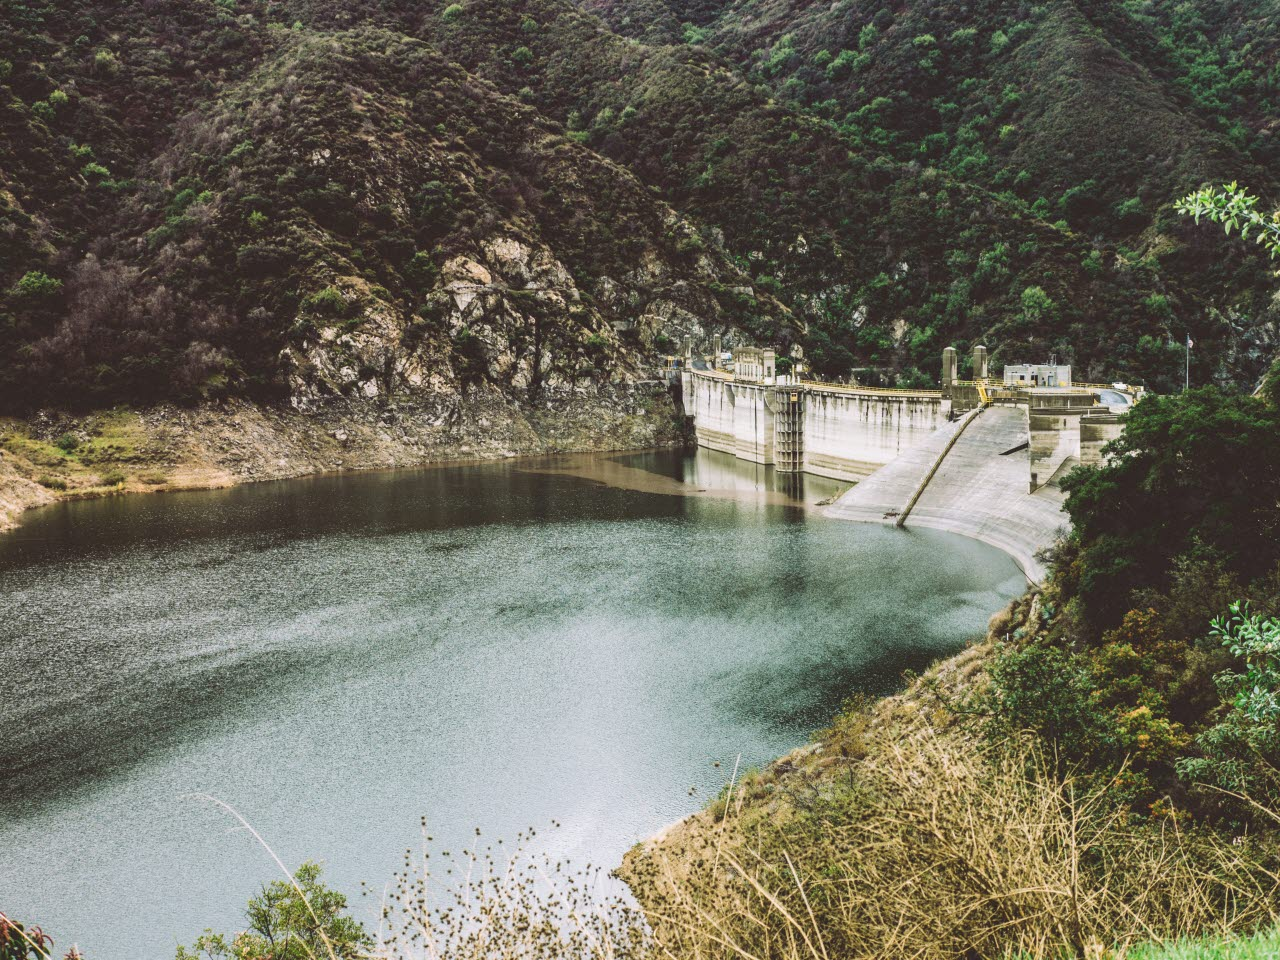 Picture of a tailings dam